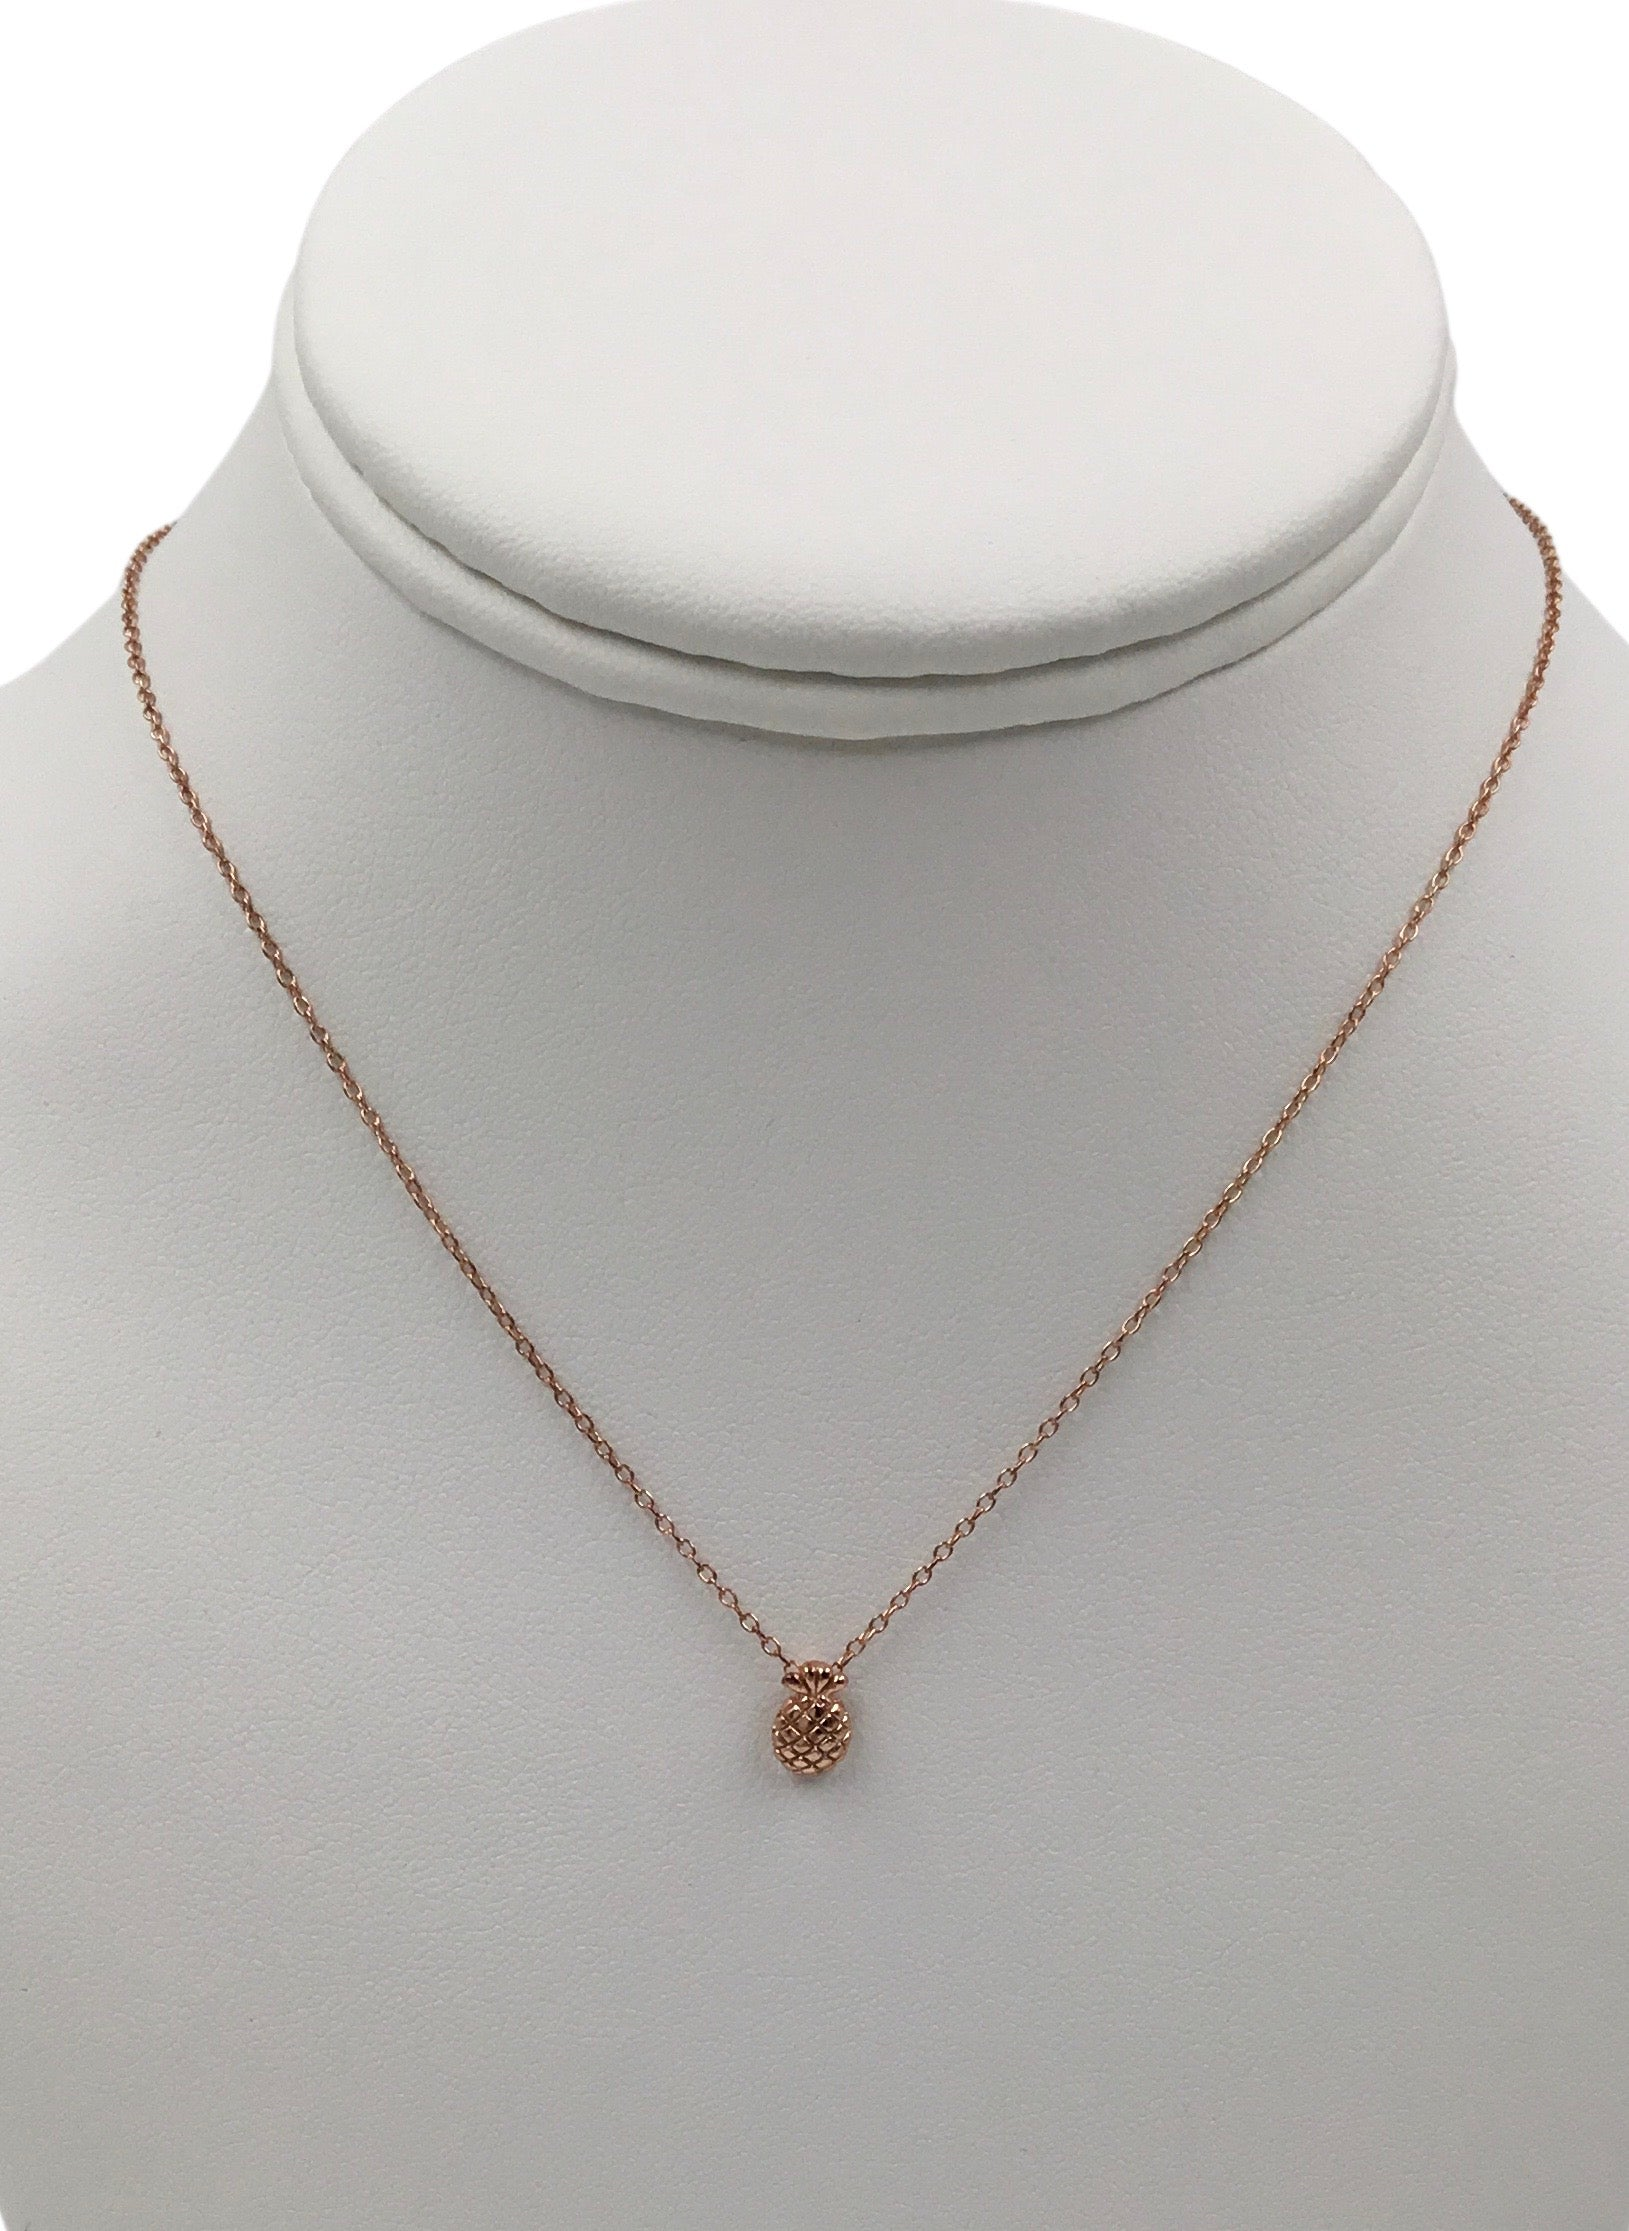 Tiny Pineapple rose gold plated Pendant  necklace